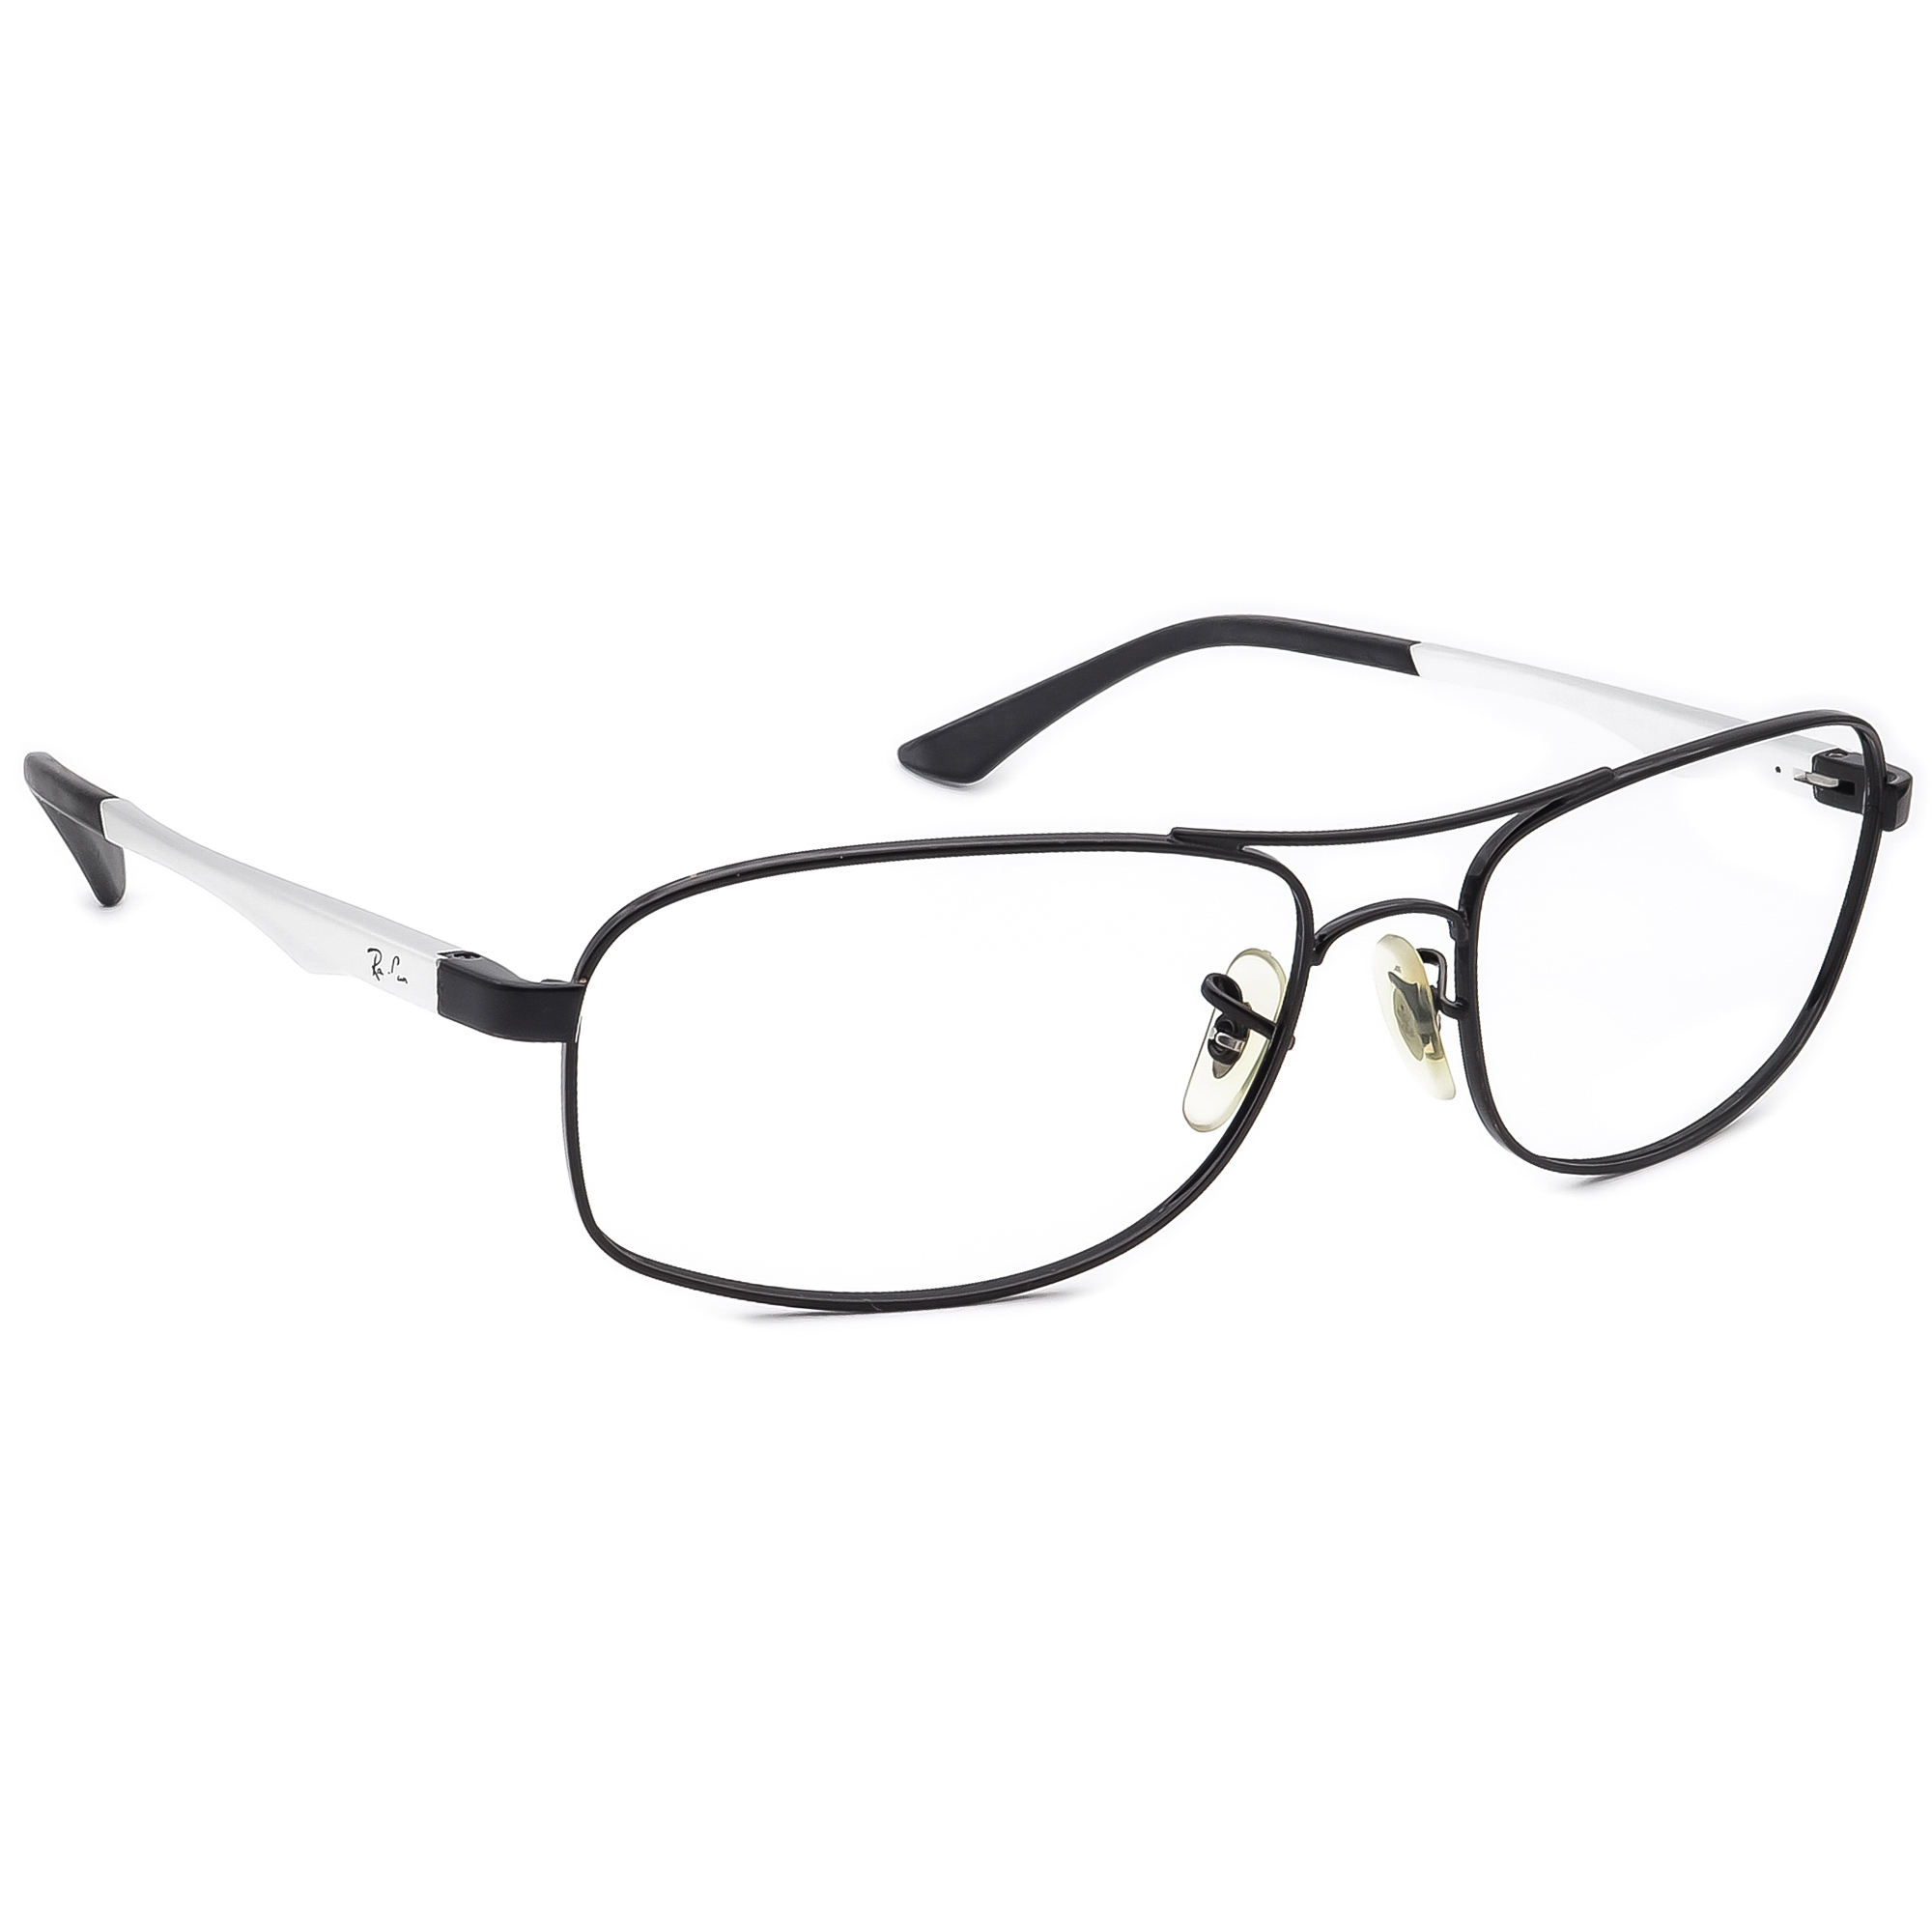 Ray-Ban RB 3484 002 Sunglasses Frame Only